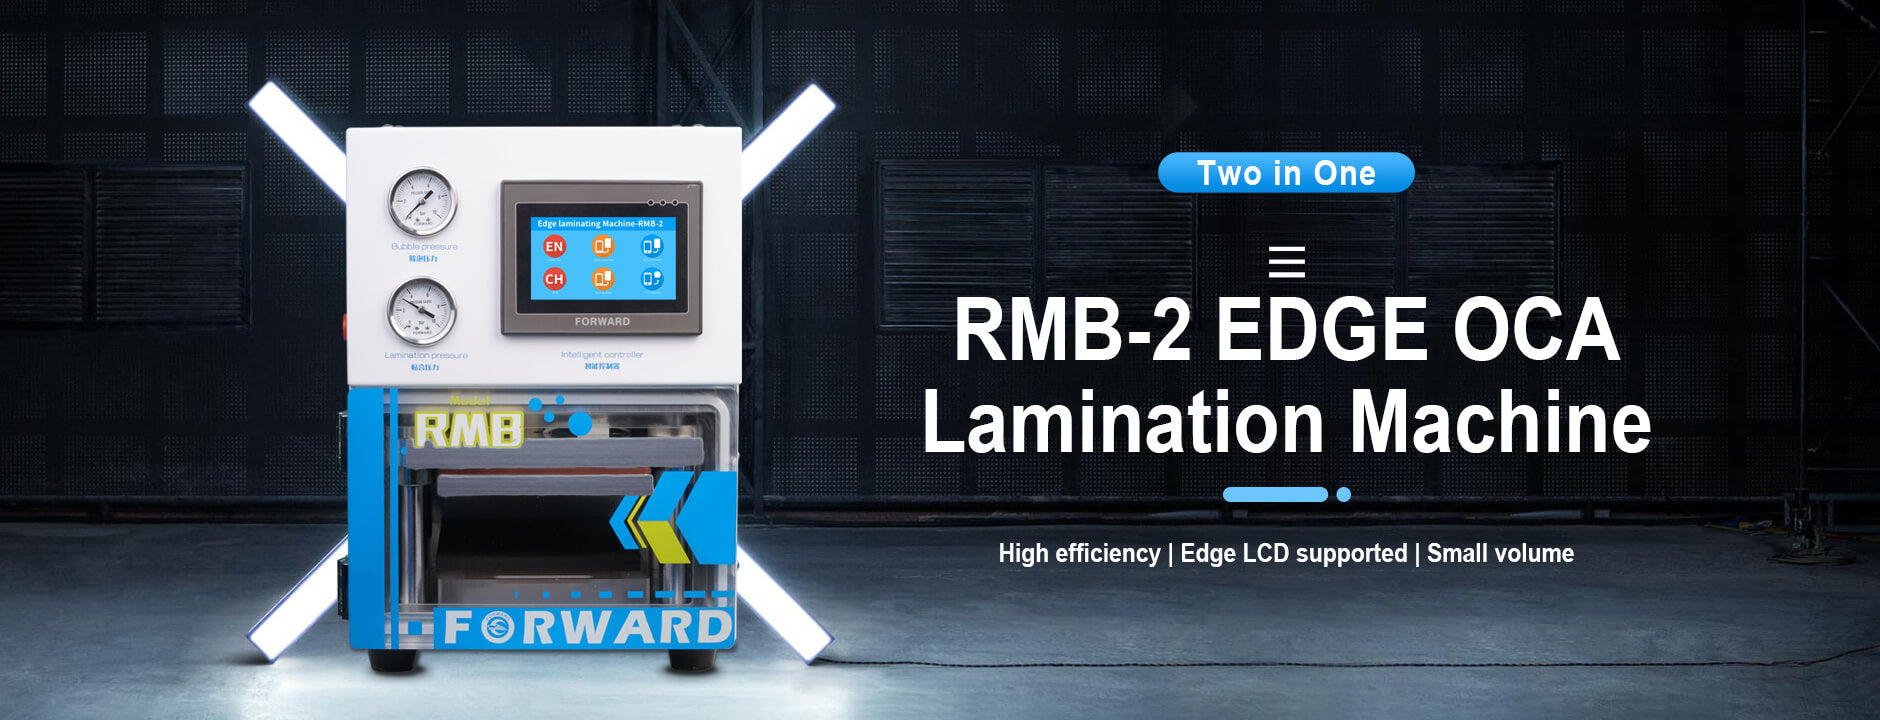 RMB-2 EDGE OCA Lamination Machine